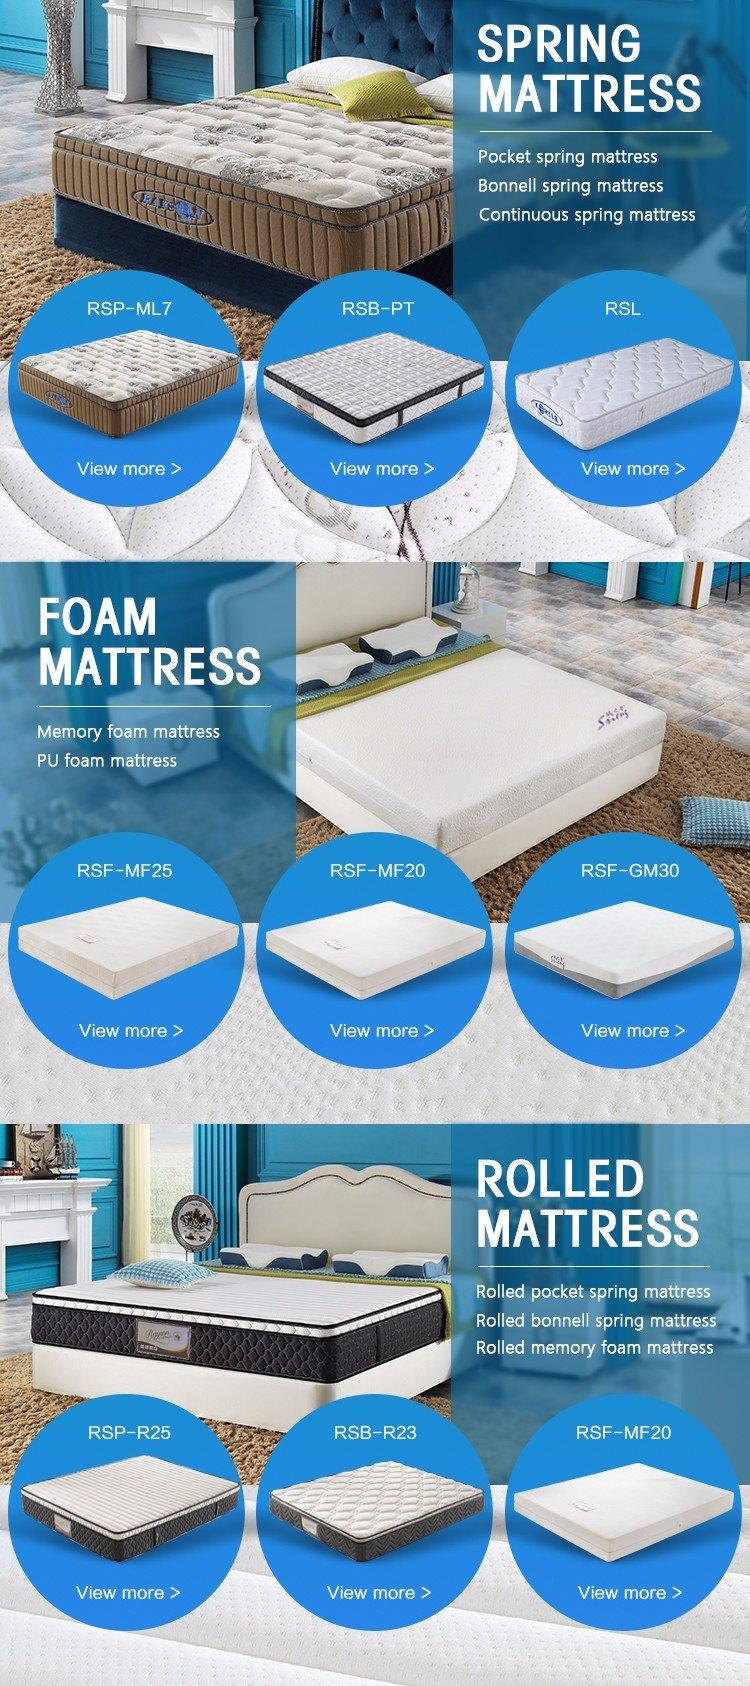 designs cooling luxury bonnell spring mattress dacron Rayson Mattress company